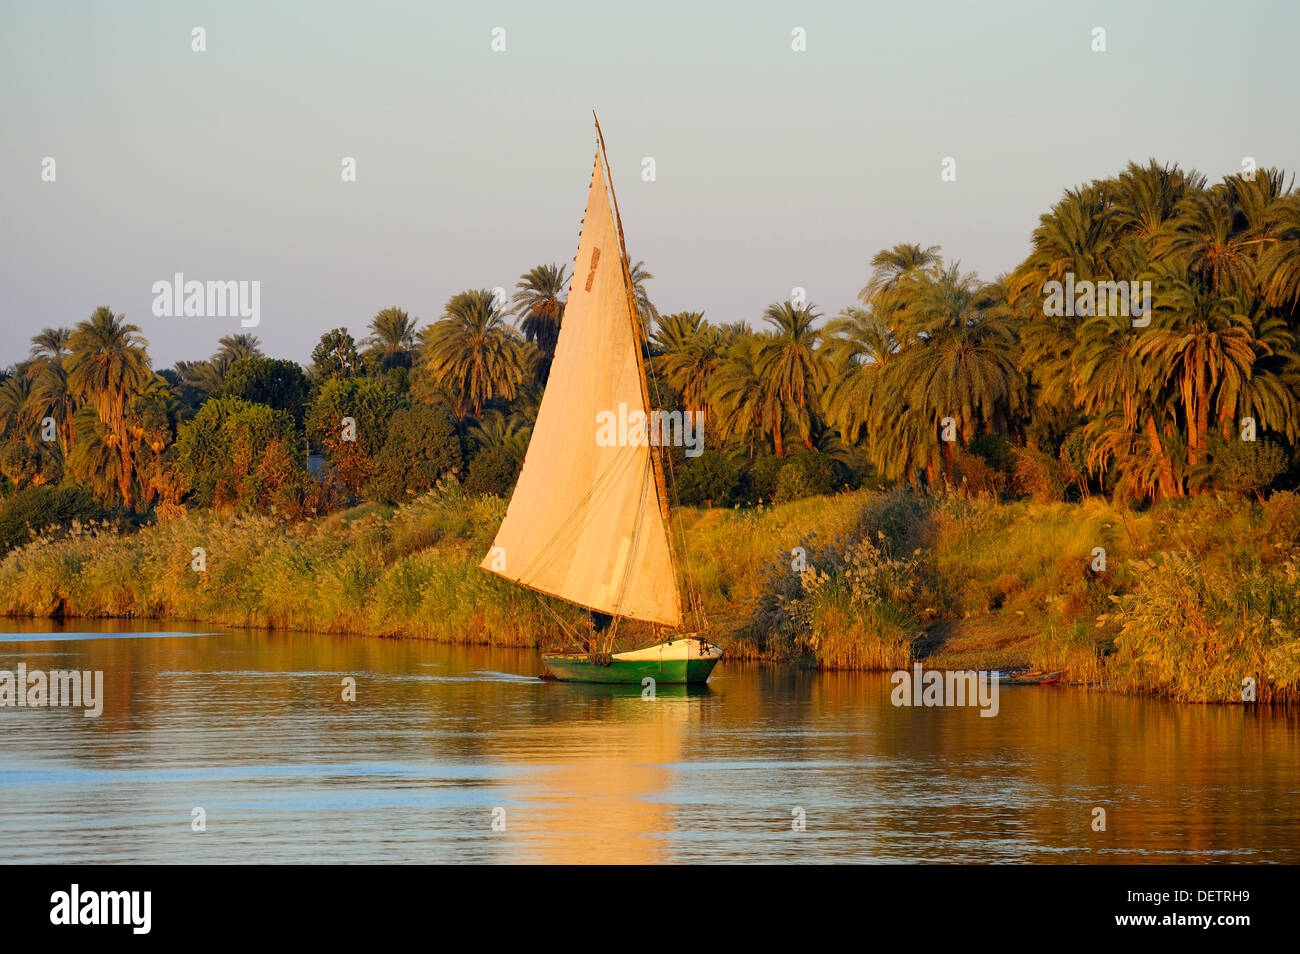 Felucca under sail on River Nile between Aswan and Luxor, Upper Egypt - Stock Image